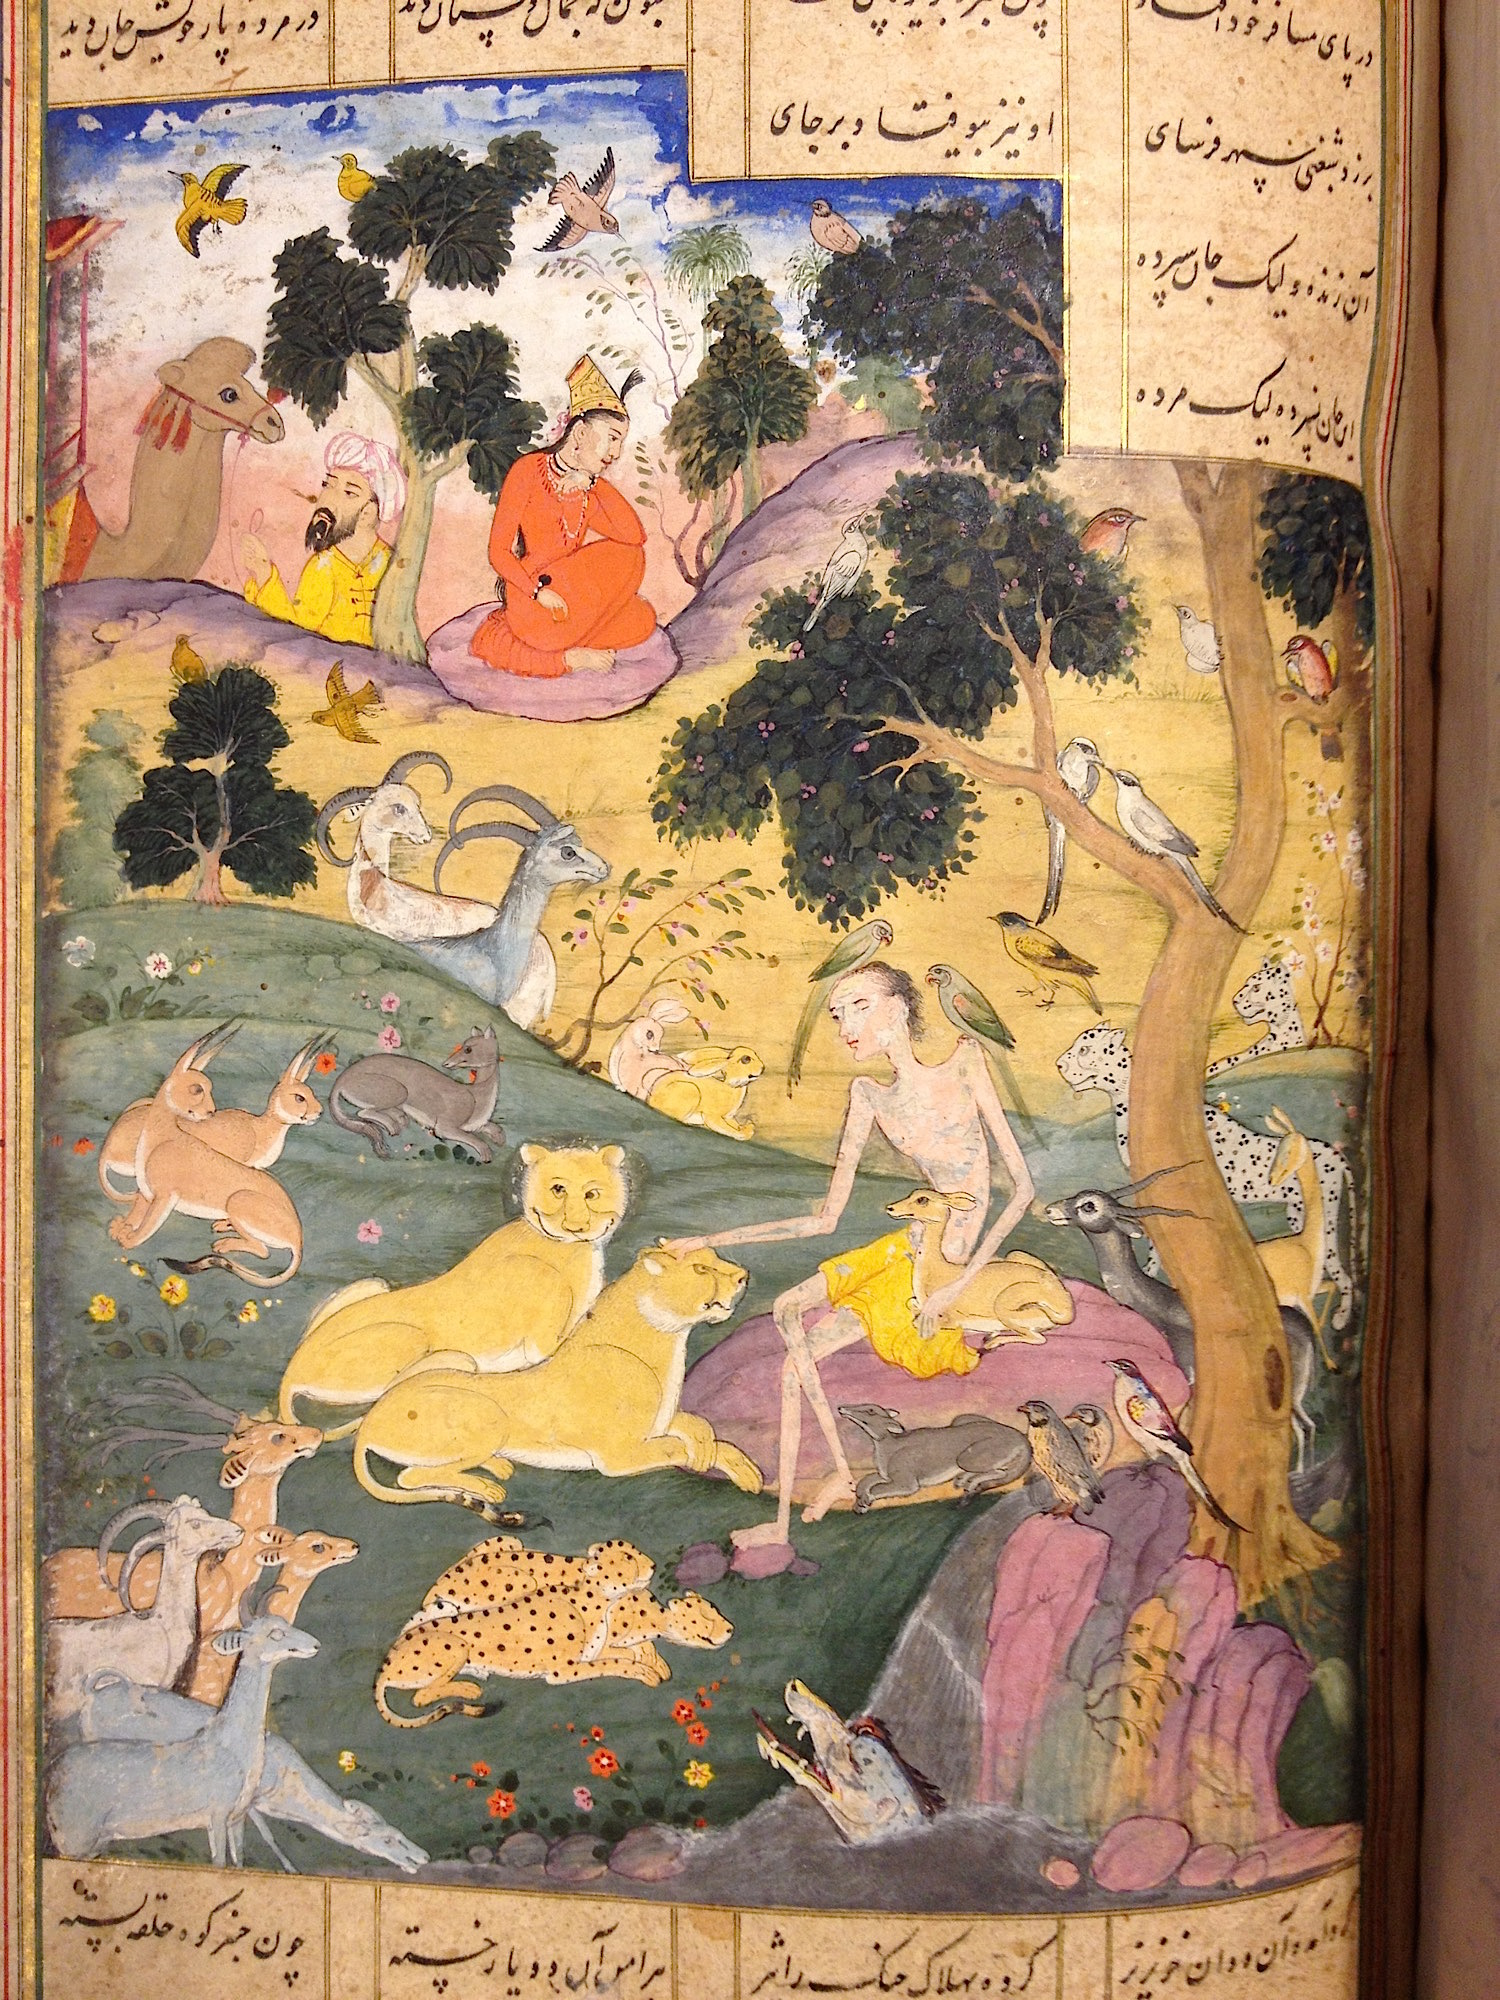 Layla visits Majnun in the wilderness surrounded by animals (IO Islamic 384, f. 42r) [Licensed under Public Domain]